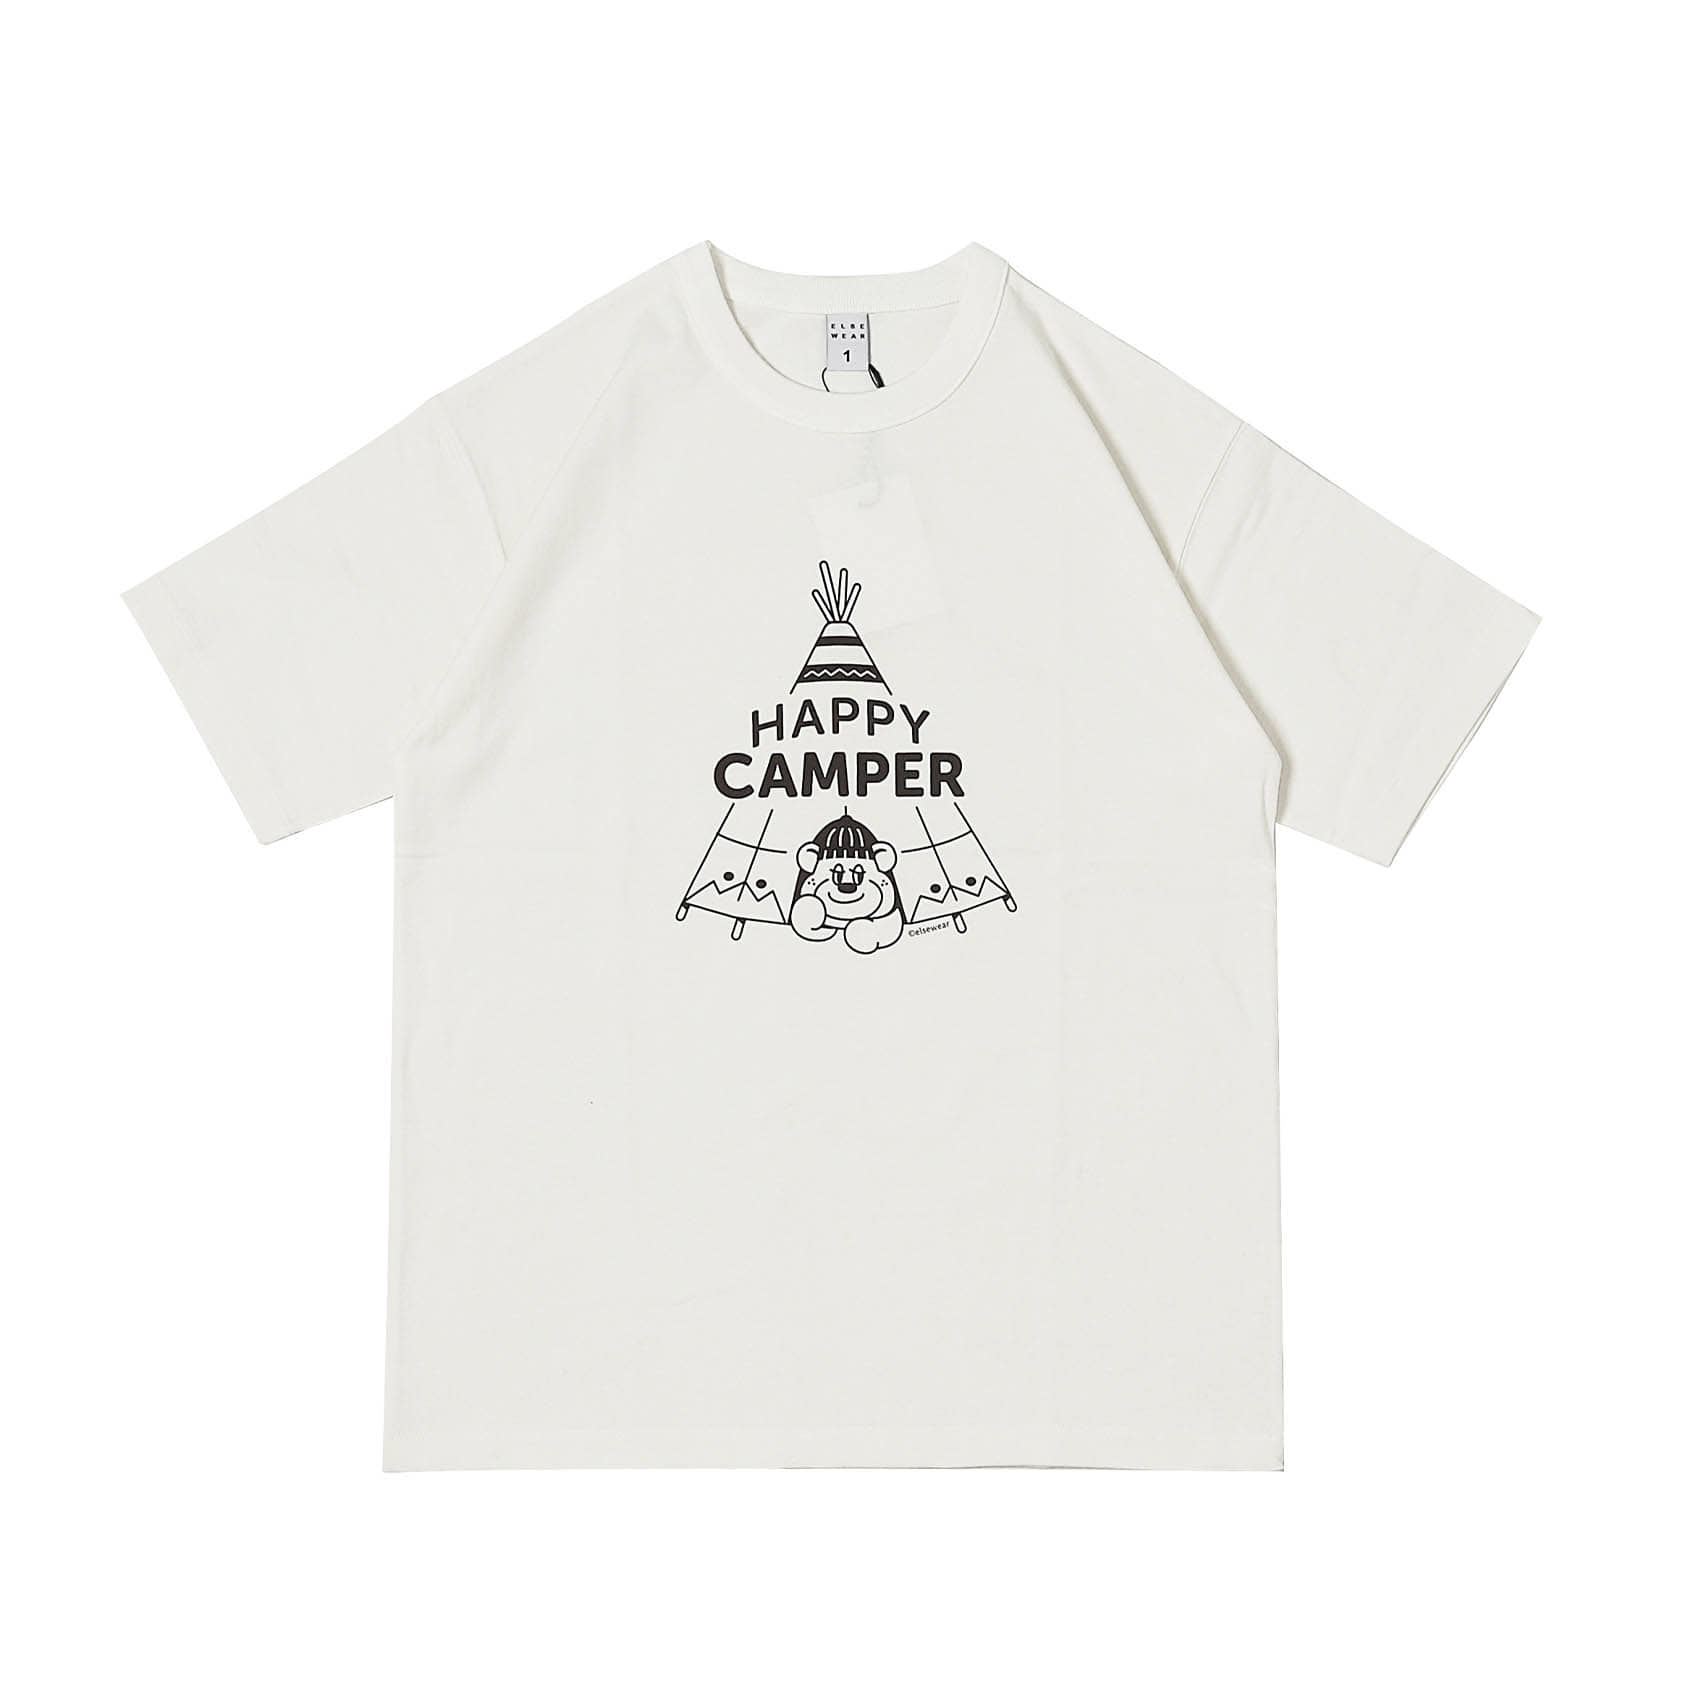 S/S PRINTED TEE - HAPPY CAMPER